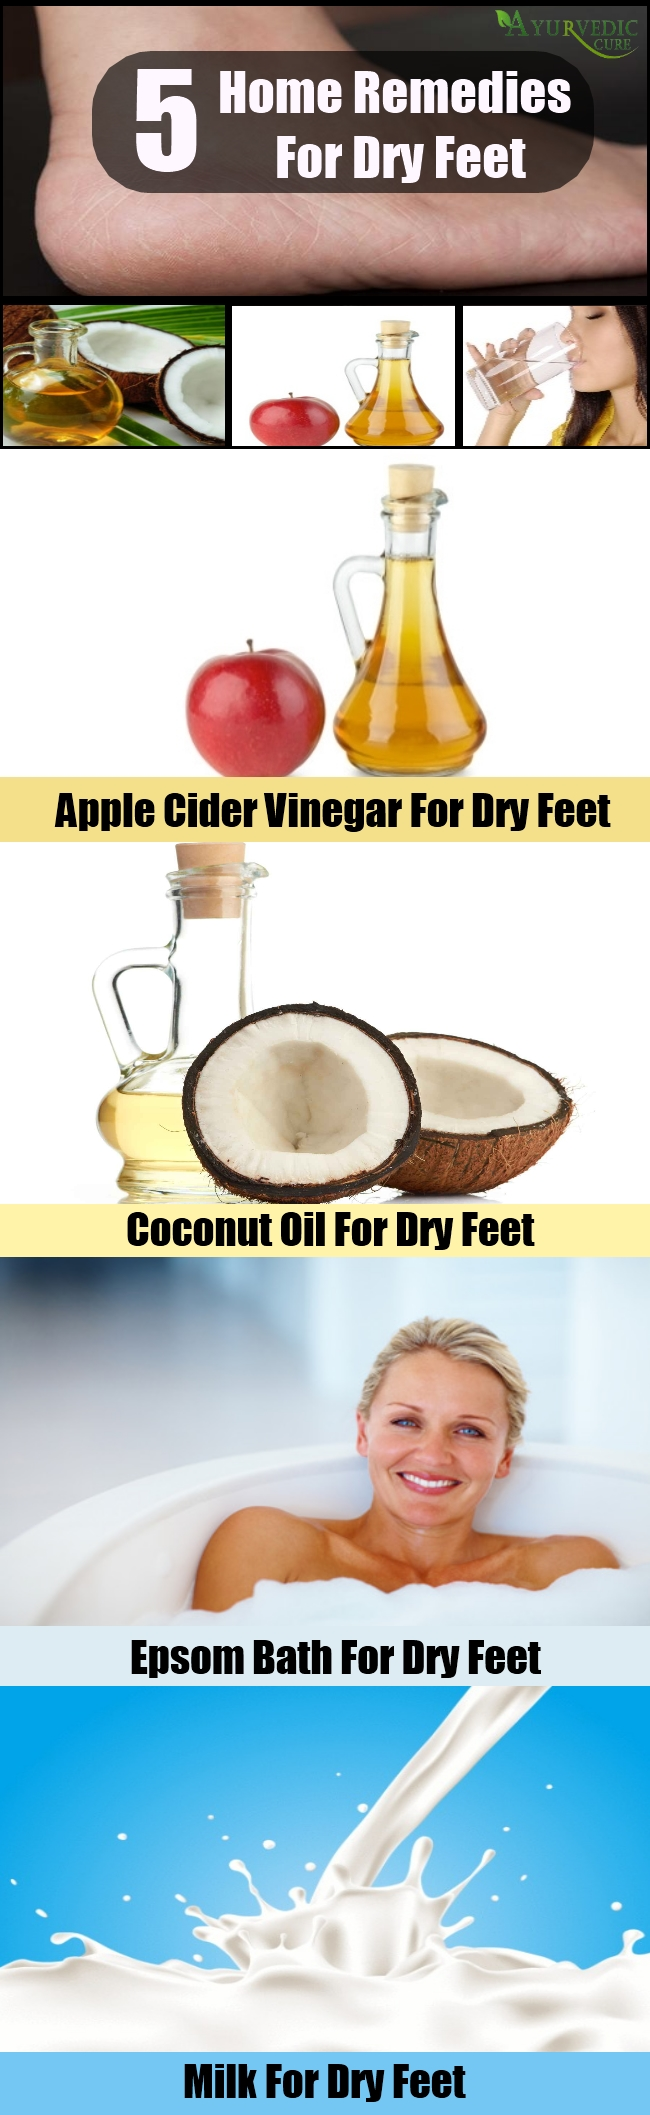 Useful Home Remedies For Dry Feet